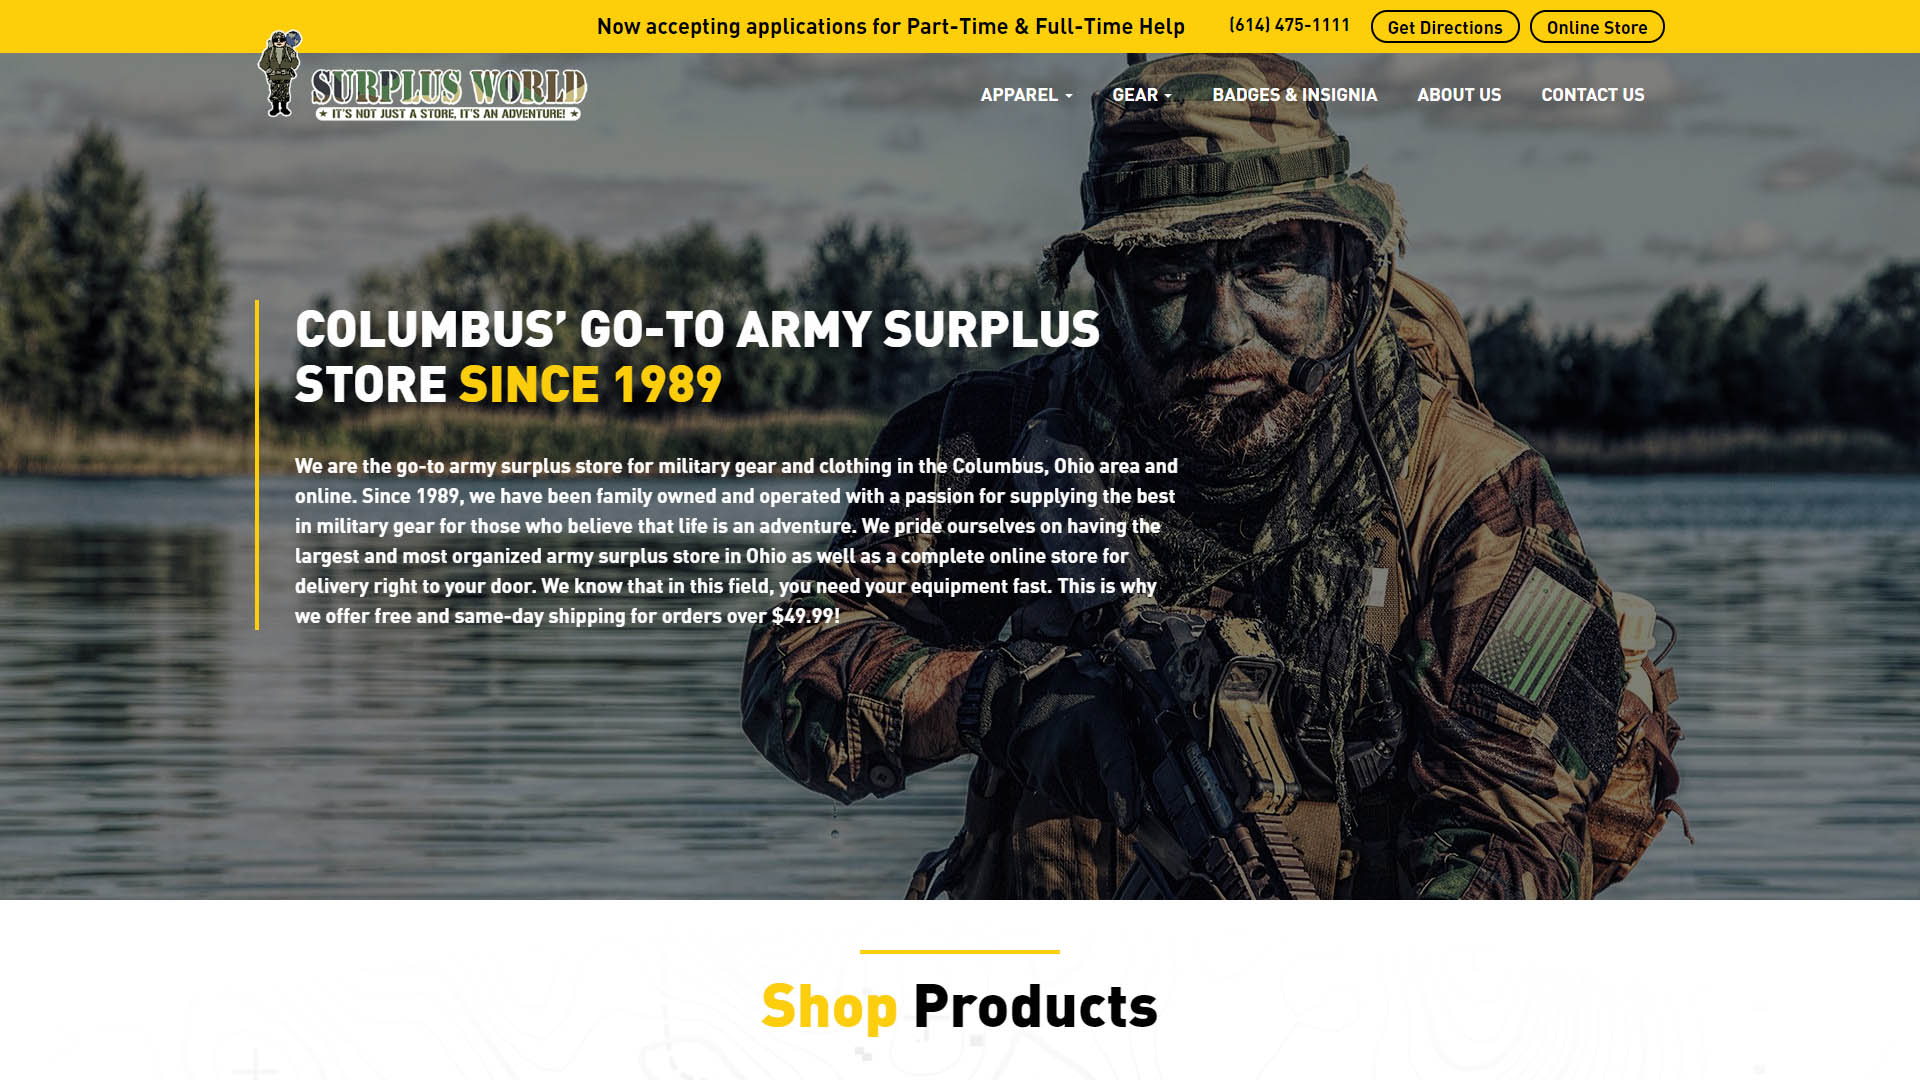 Surplus World Online Website Portfolio Image